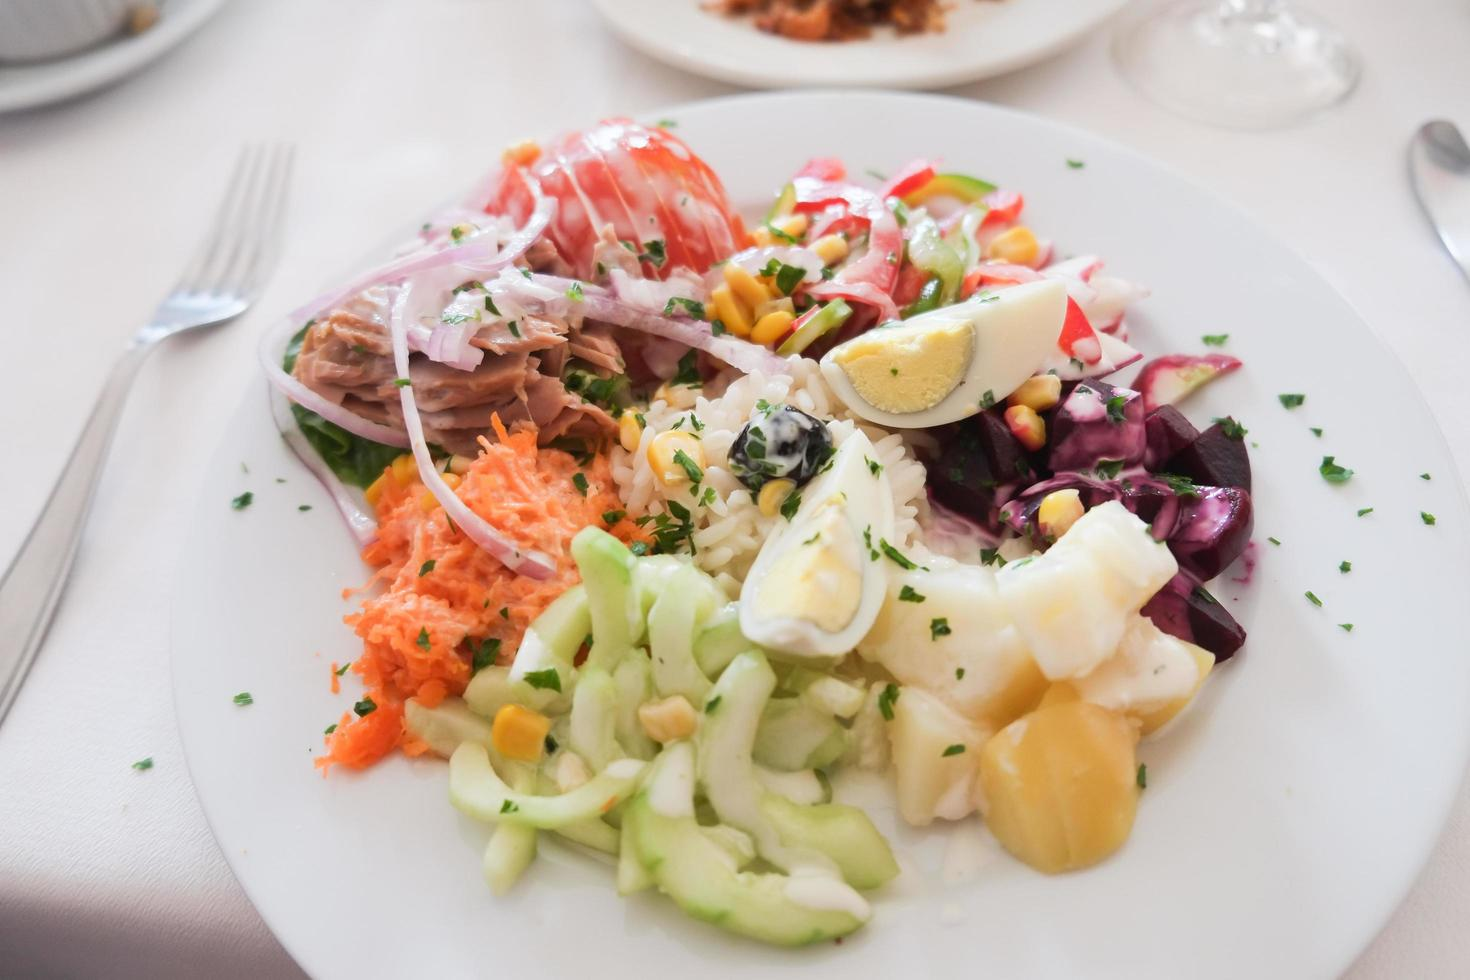 A plate of salad photo